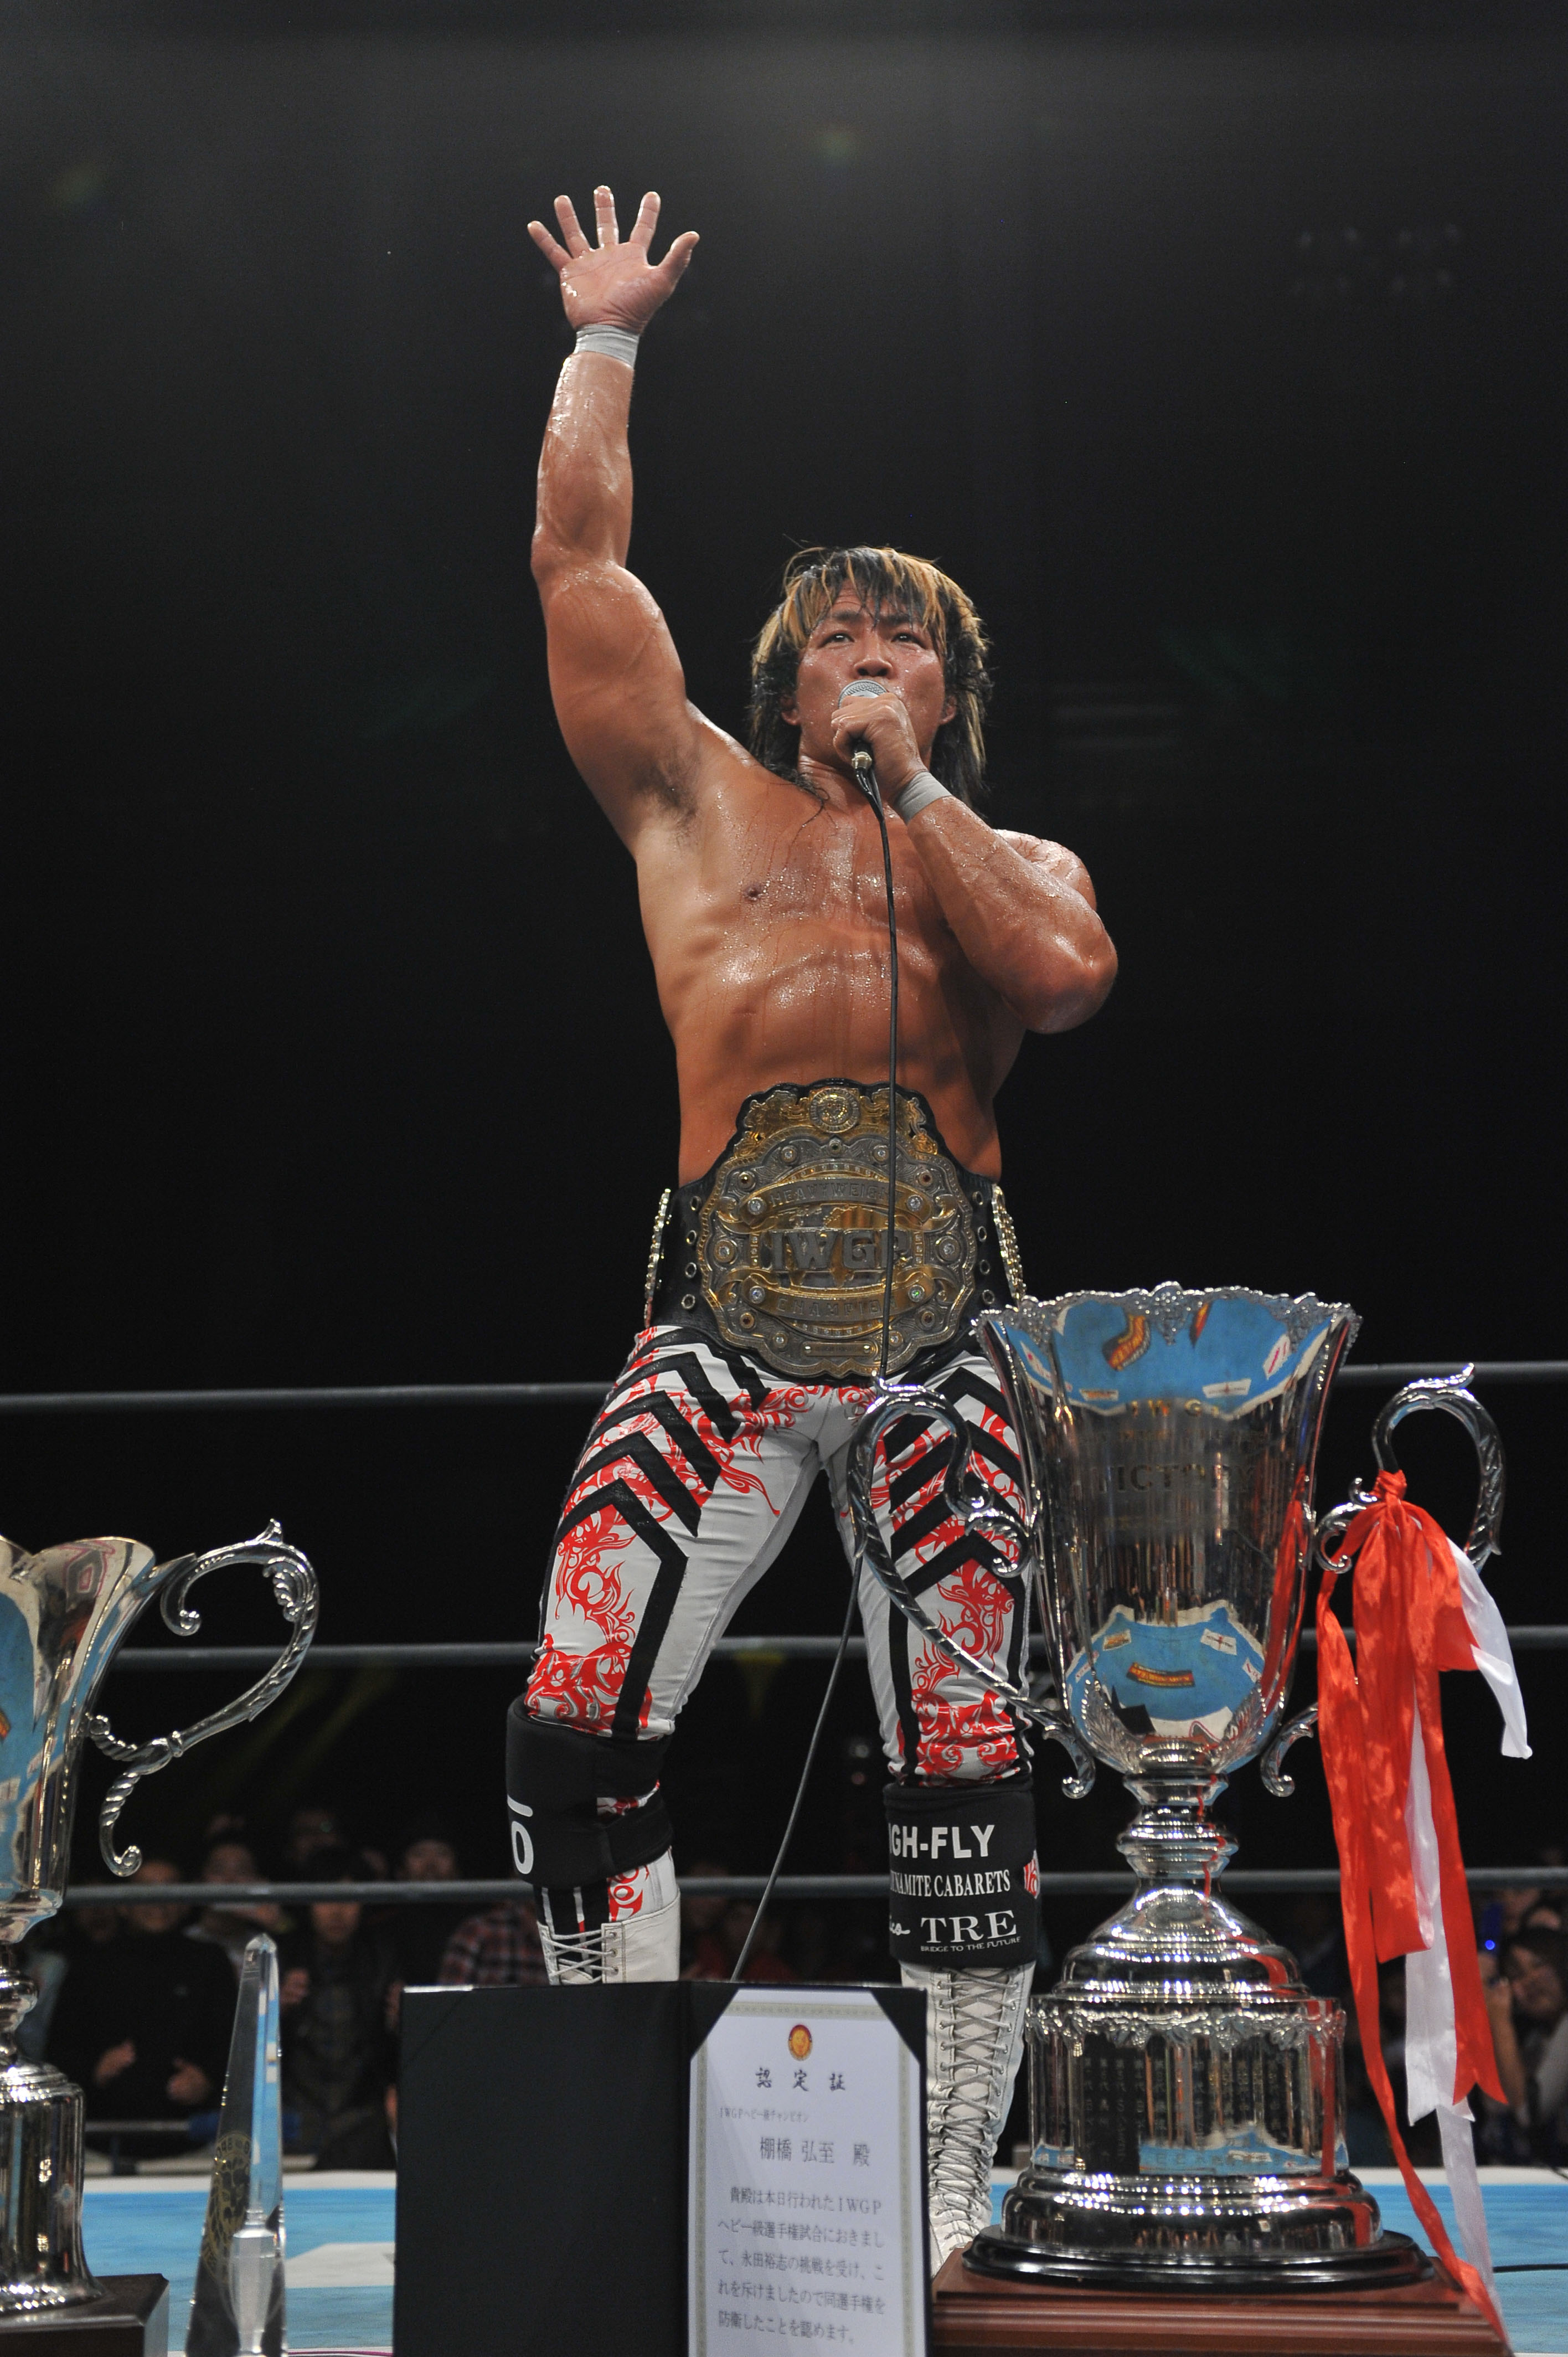 Let's get ready to rumble: Current Heavyweight Champion Hiroshi Tanahashi will fight Minoru Suzuki at next month's 'Wrestle Kingdom 6' event at Tokyo Dome. | © NJPW